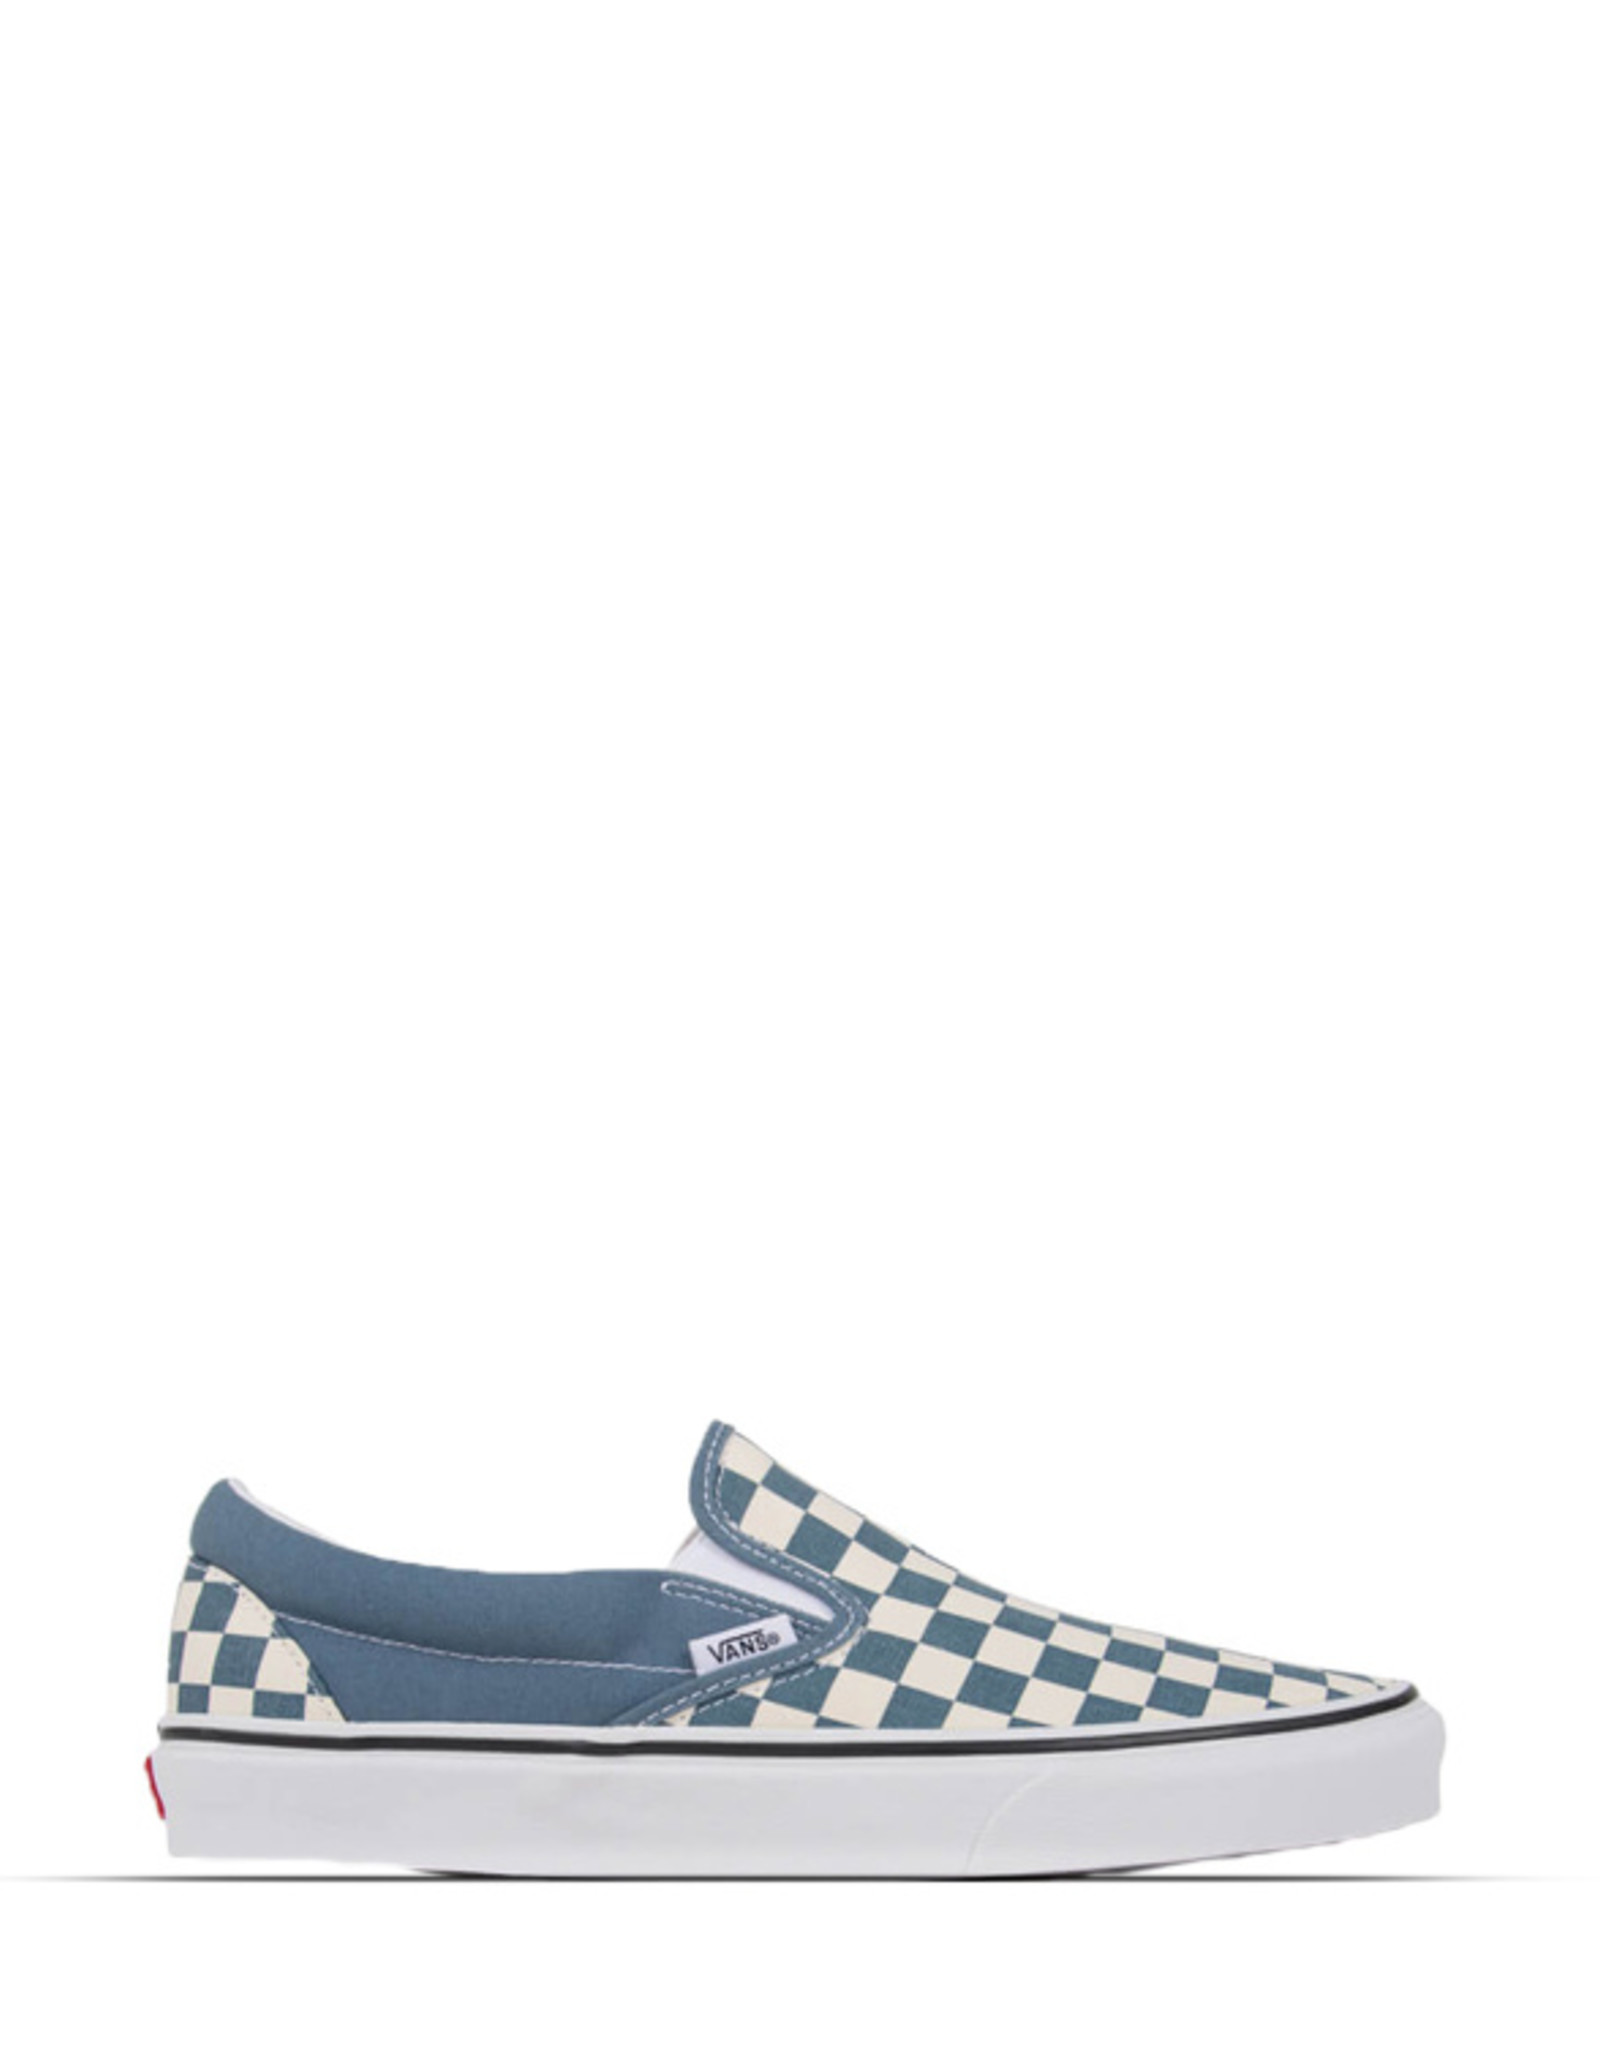 VANS CLASSIC SLIP-ON CHECK BOARD BLUE